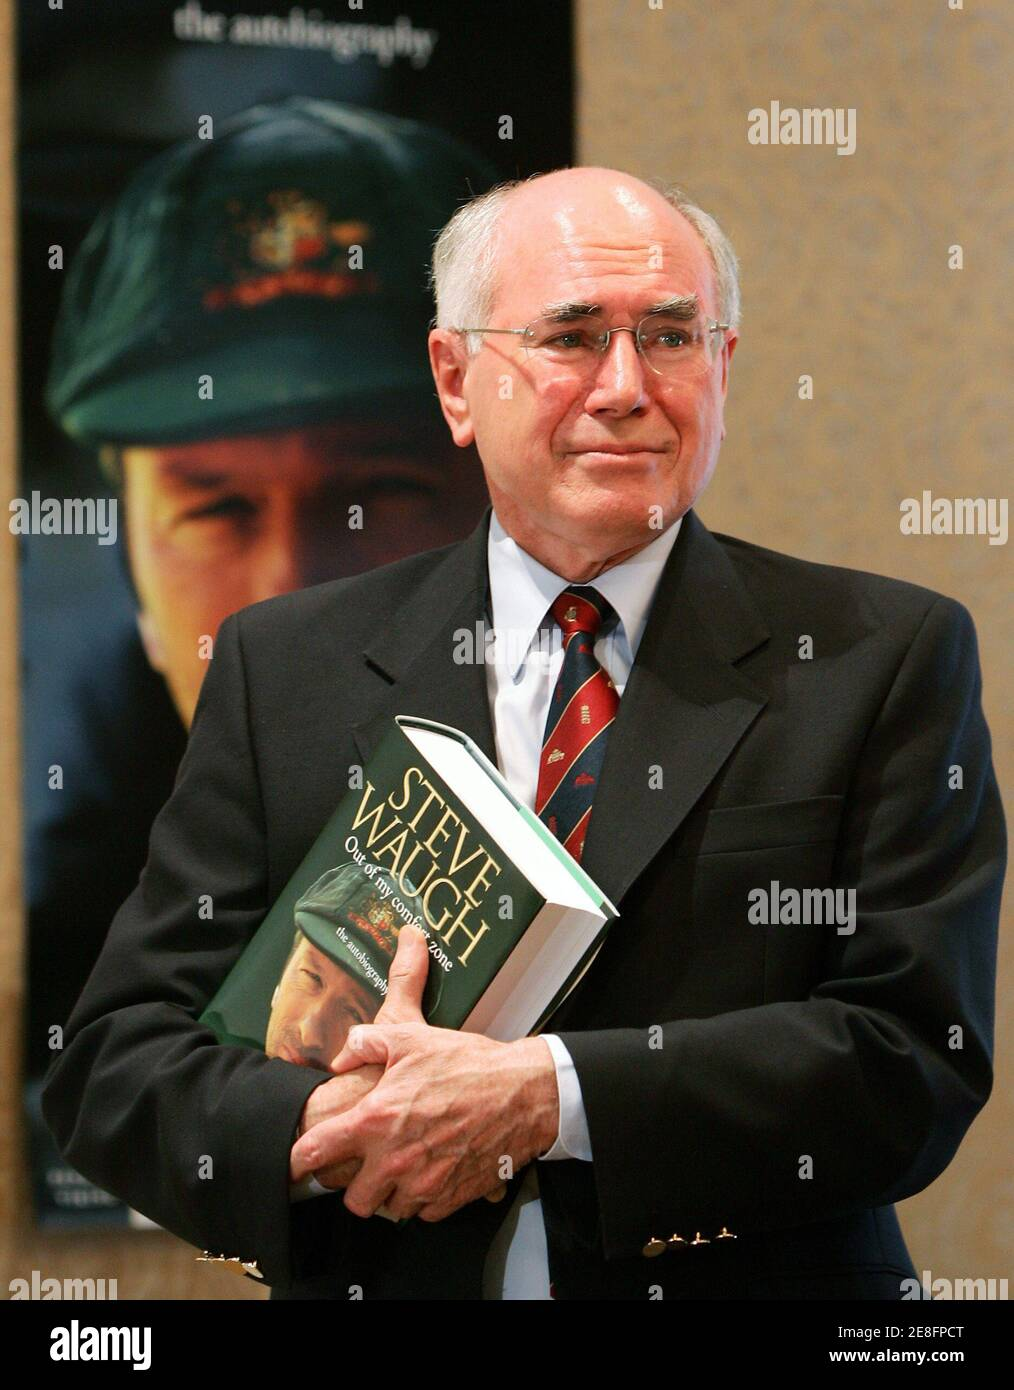 Australia's Prime Minister John Howard holds his copy of former Australian cricket team captain Steve Waugh's autobiography after launching the book in Sydney October 23, 2005. Waugh, Australia's Test cricket captain from 1999 to 2004, has penned the book entitled 'Out of My Comfort Zone' in which he reveals insights into life on and off the field during the time he headed a dominant team. REUTERS/Will Burgess Stock Photo